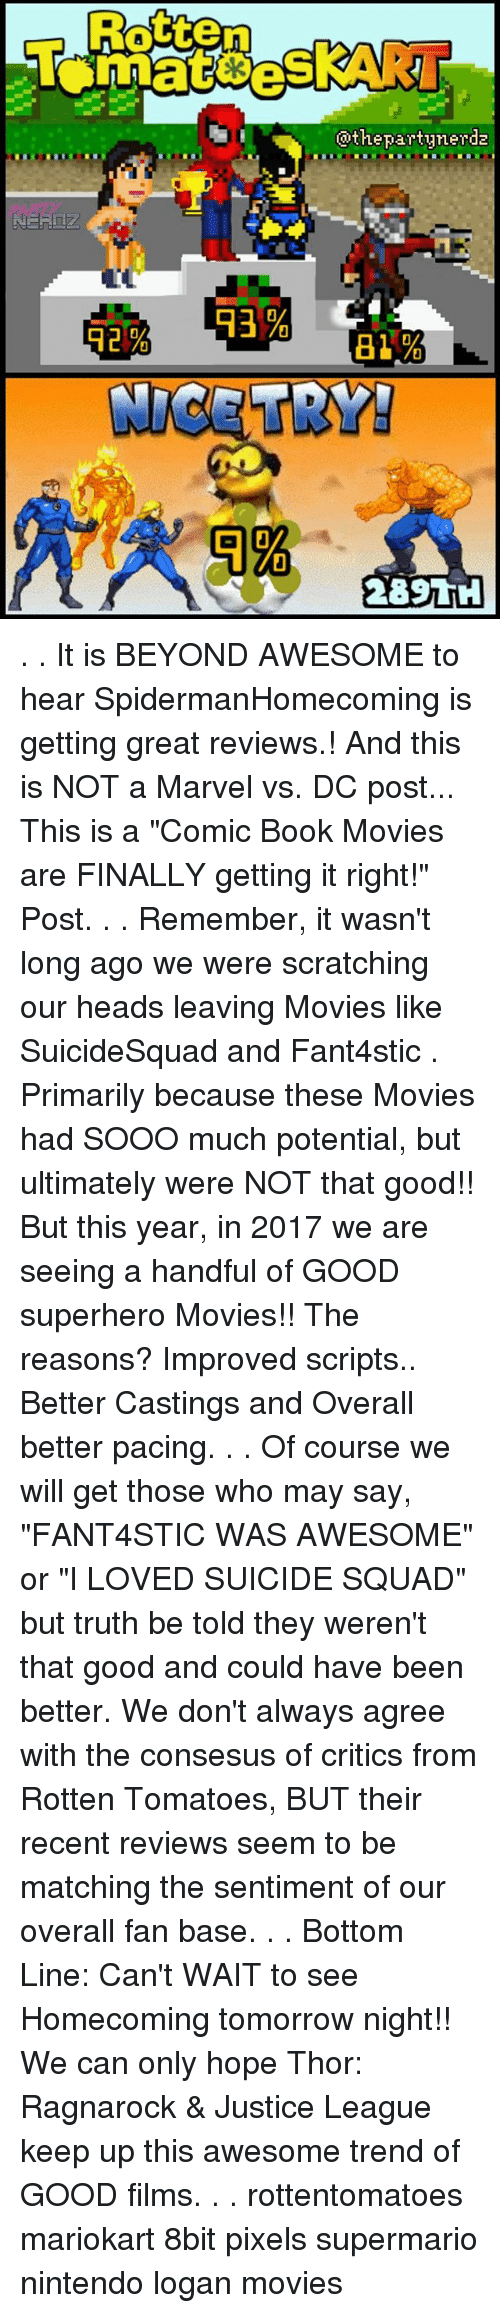 """8bit: Rotten  @thepartynerda . . It is BEYOND AWESOME to hear SpidermanHomecoming is getting great reviews.! And this is NOT a Marvel vs. DC post... This is a """"Comic Book Movies are FINALLY getting it right!"""" Post. . . Remember, it wasn't long ago we were scratching our heads leaving Movies like SuicideSquad and Fant4stic . Primarily because these Movies had SOOO much potential, but ultimately were NOT that good!! But this year, in 2017 we are seeing a handful of GOOD superhero Movies!! The reasons? Improved scripts.. Better Castings and Overall better pacing. . . Of course we will get those who may say, """"FANT4STIC WAS AWESOME"""" or """"I LOVED SUICIDE SQUAD"""" but truth be told they weren't that good and could have been better. We don't always agree with the consesus of critics from Rotten Tomatoes, BUT their recent reviews seem to be matching the sentiment of our overall fan base. . . Bottom Line: Can't WAIT to see Homecoming tomorrow night!! We can only hope Thor: Ragnarock & Justice League keep up this awesome trend of GOOD films. . . rottentomatoes mariokart 8bit pixels supermario nintendo logan movies"""